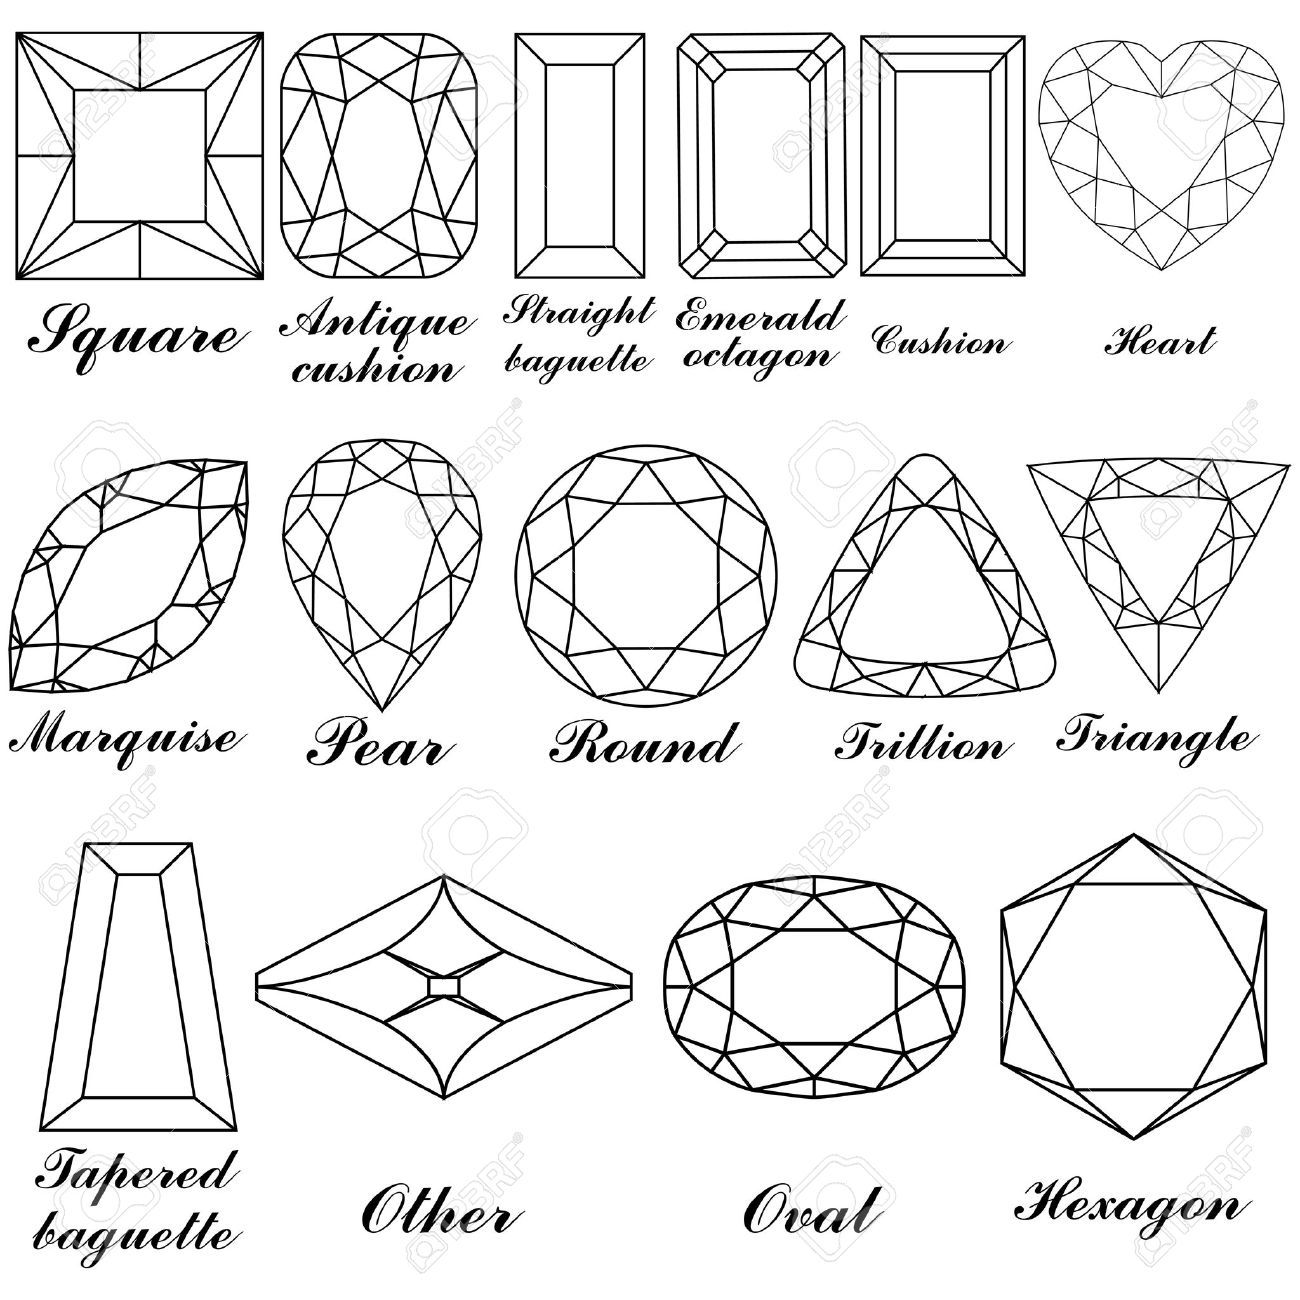 Faceted Jewel Line Drawing